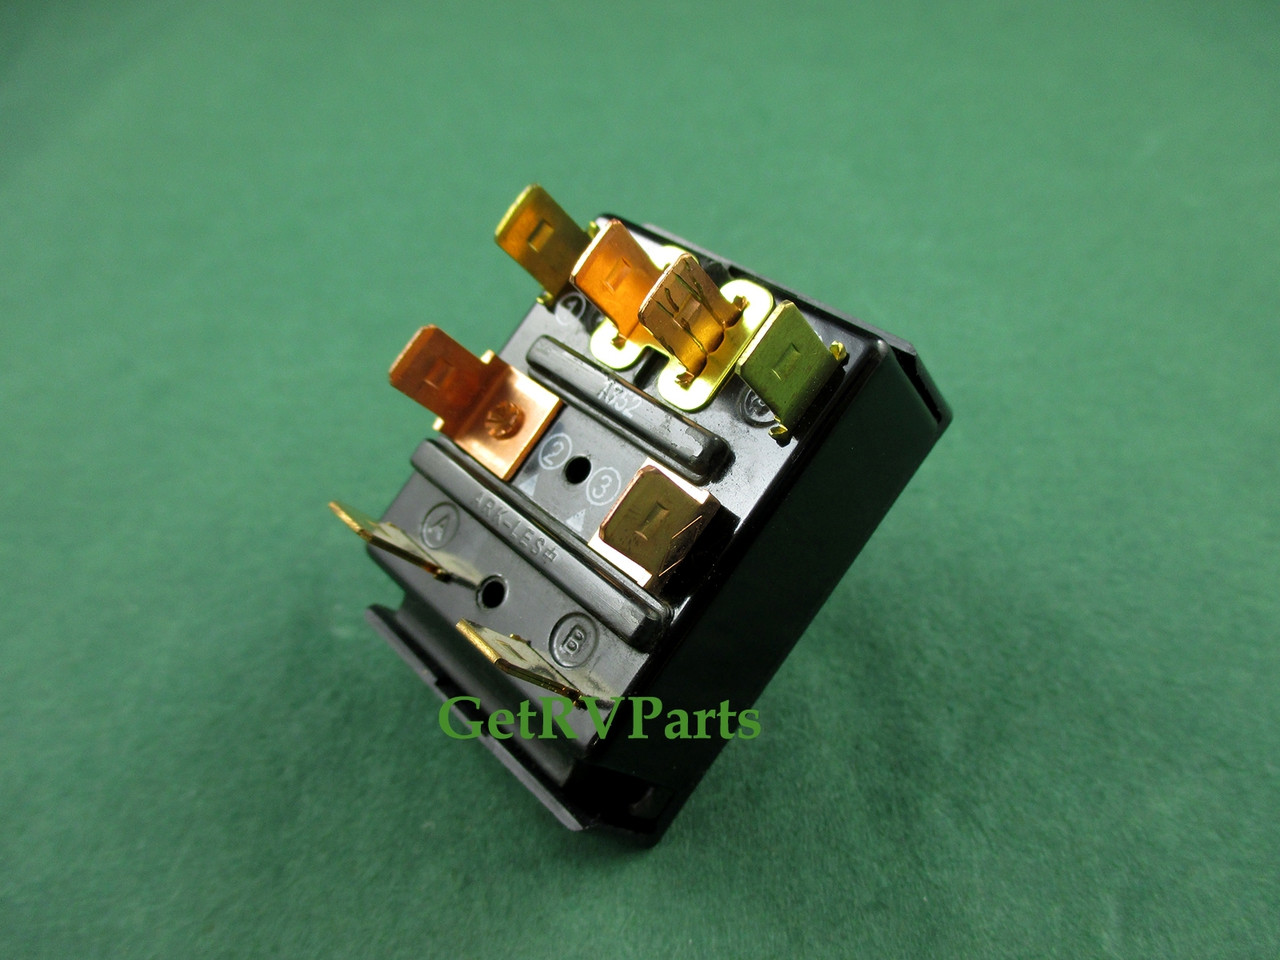 Dometic 3313107025 RV Air Conditioner AC Selector Switch 8 Position Duo Therm